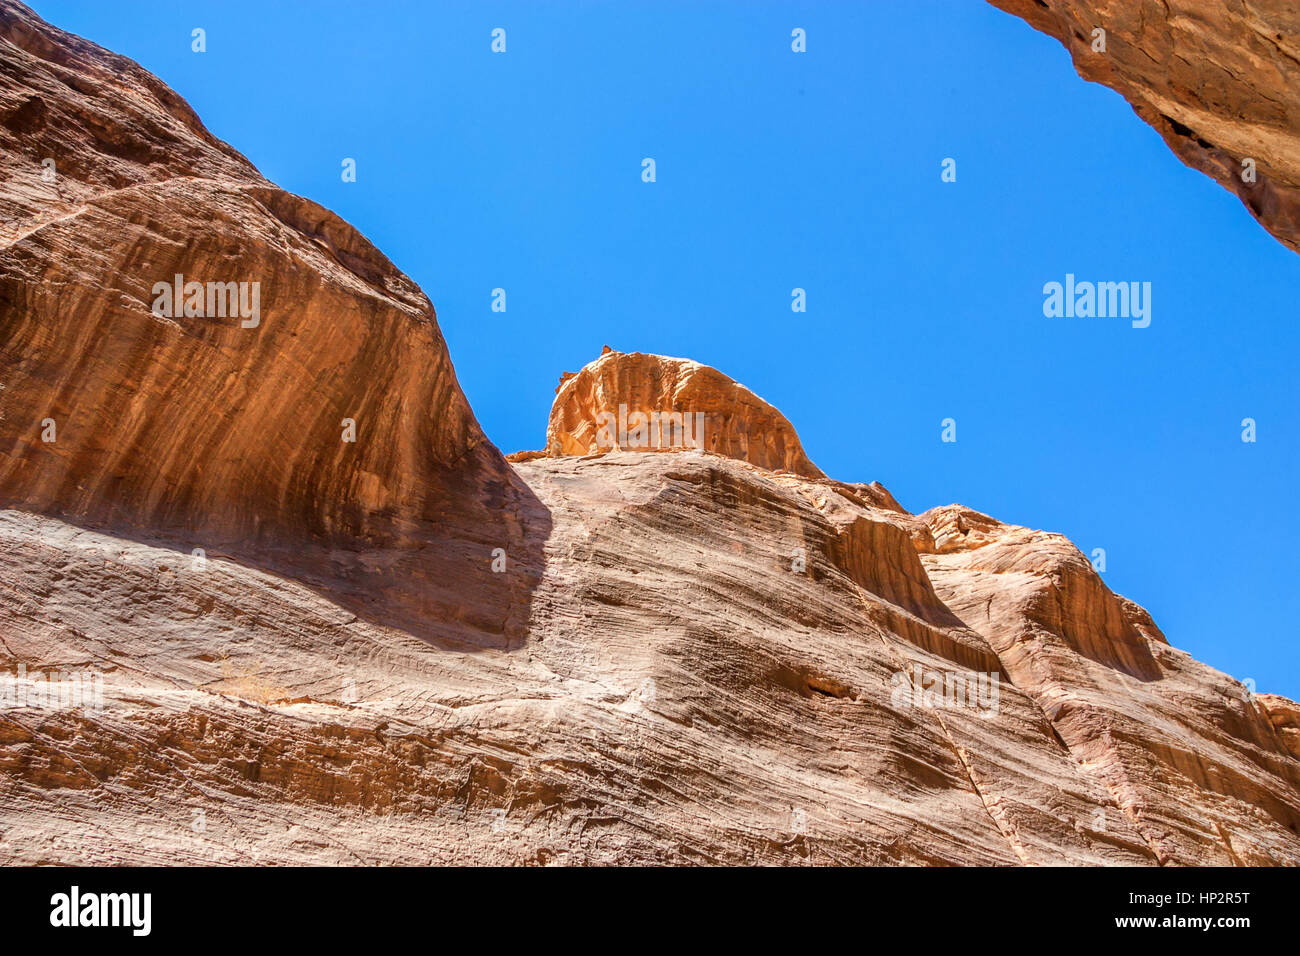 Rocks of pink sandstone in Siq canyon in Petra, Jordan - Stock Image